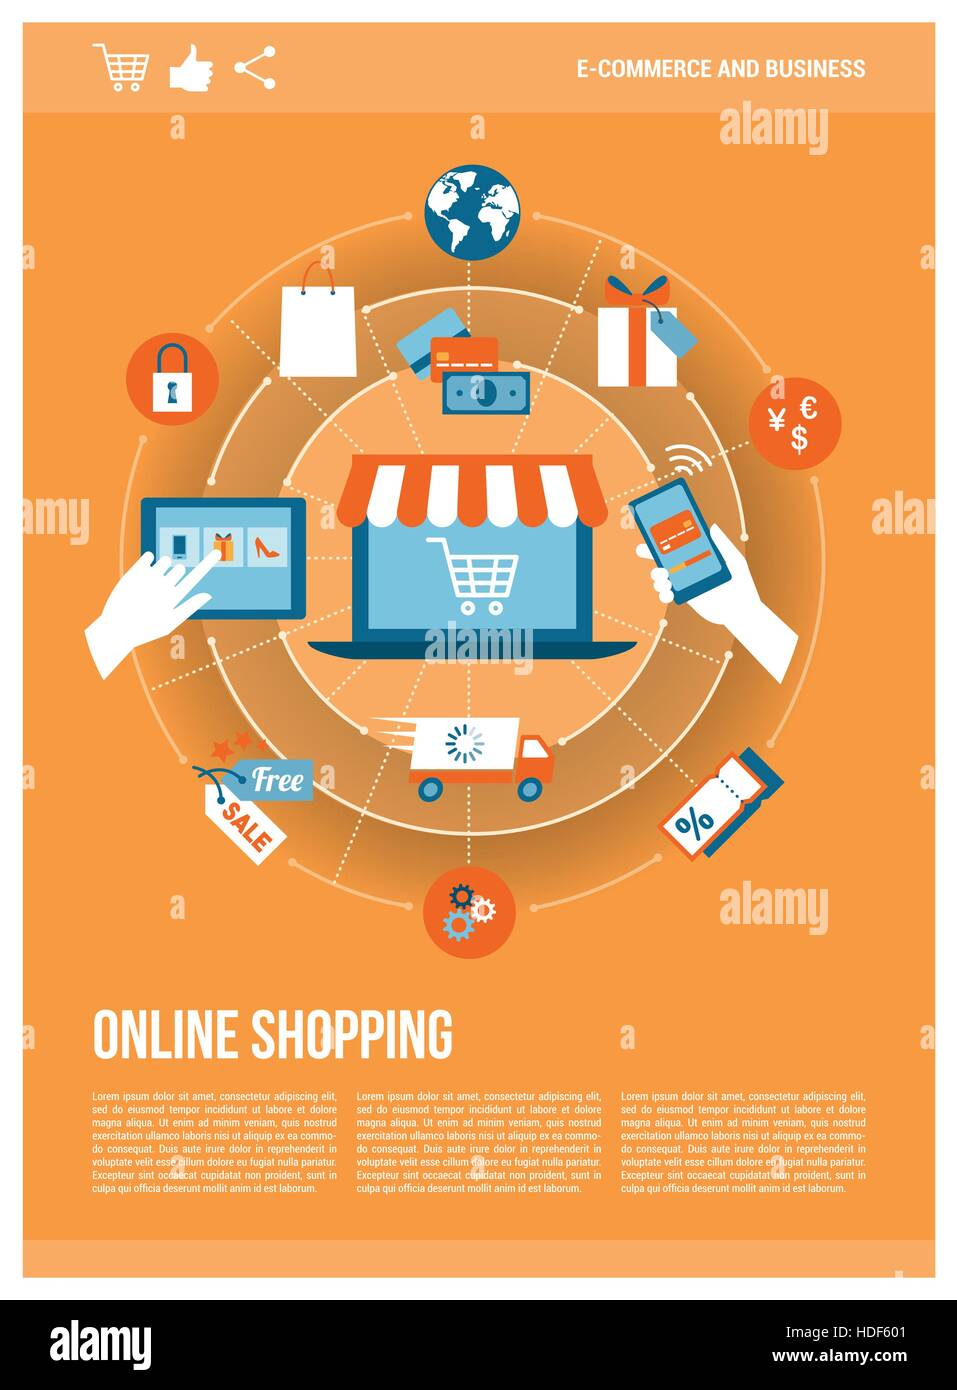 online shopping, e-payment and retail concepts on a network with a, Powerpoint templates